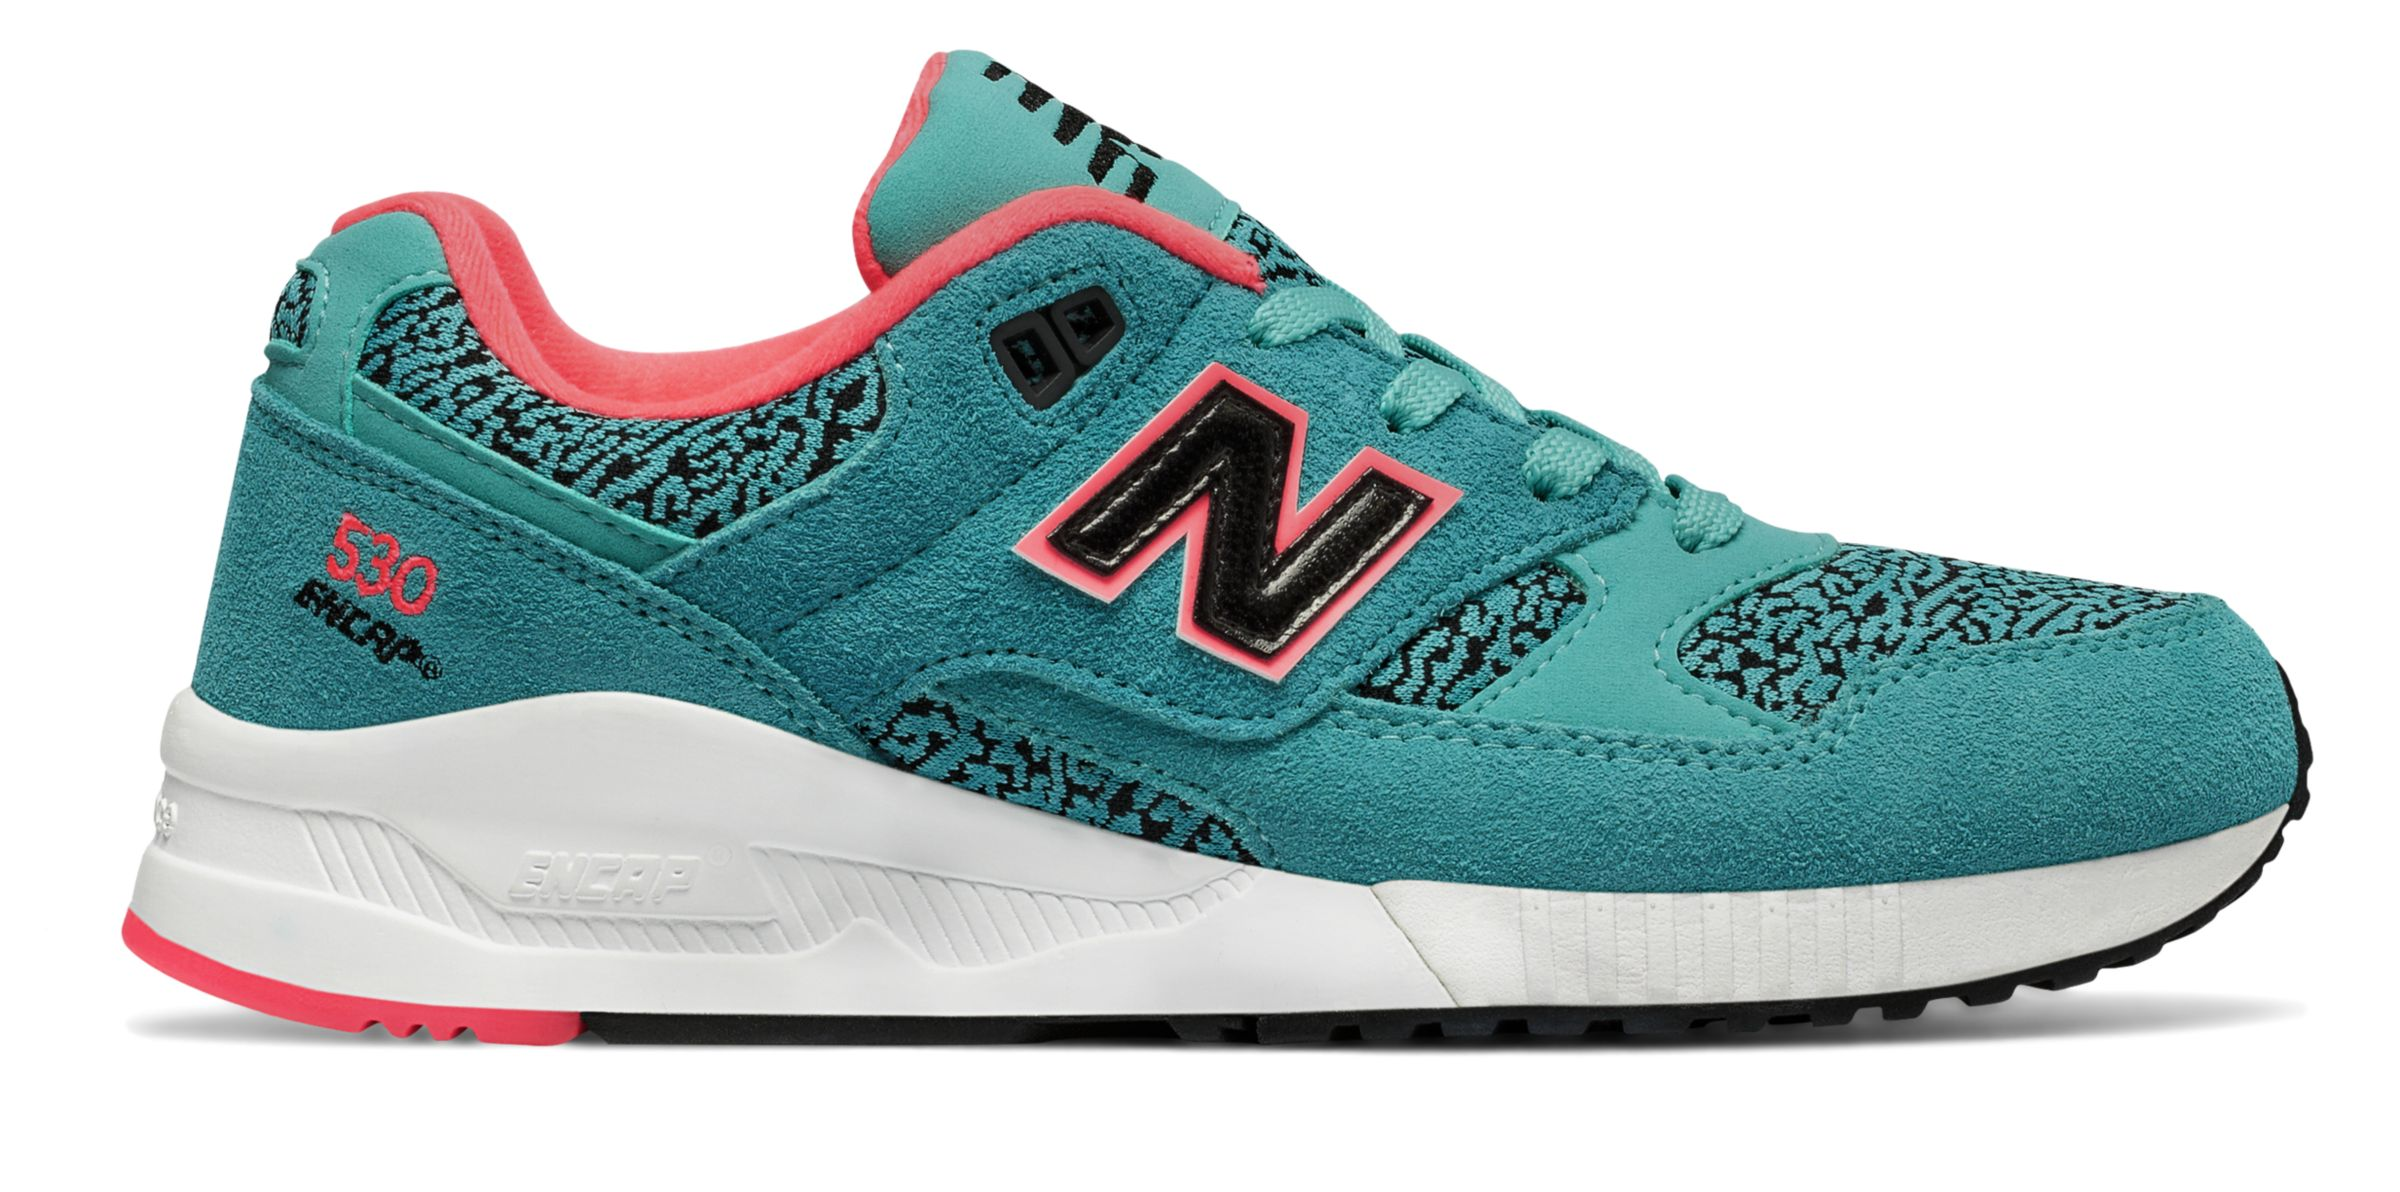 Click here for New Balance 530 Kinetic Imagination Women's Shoes W530KIB prices